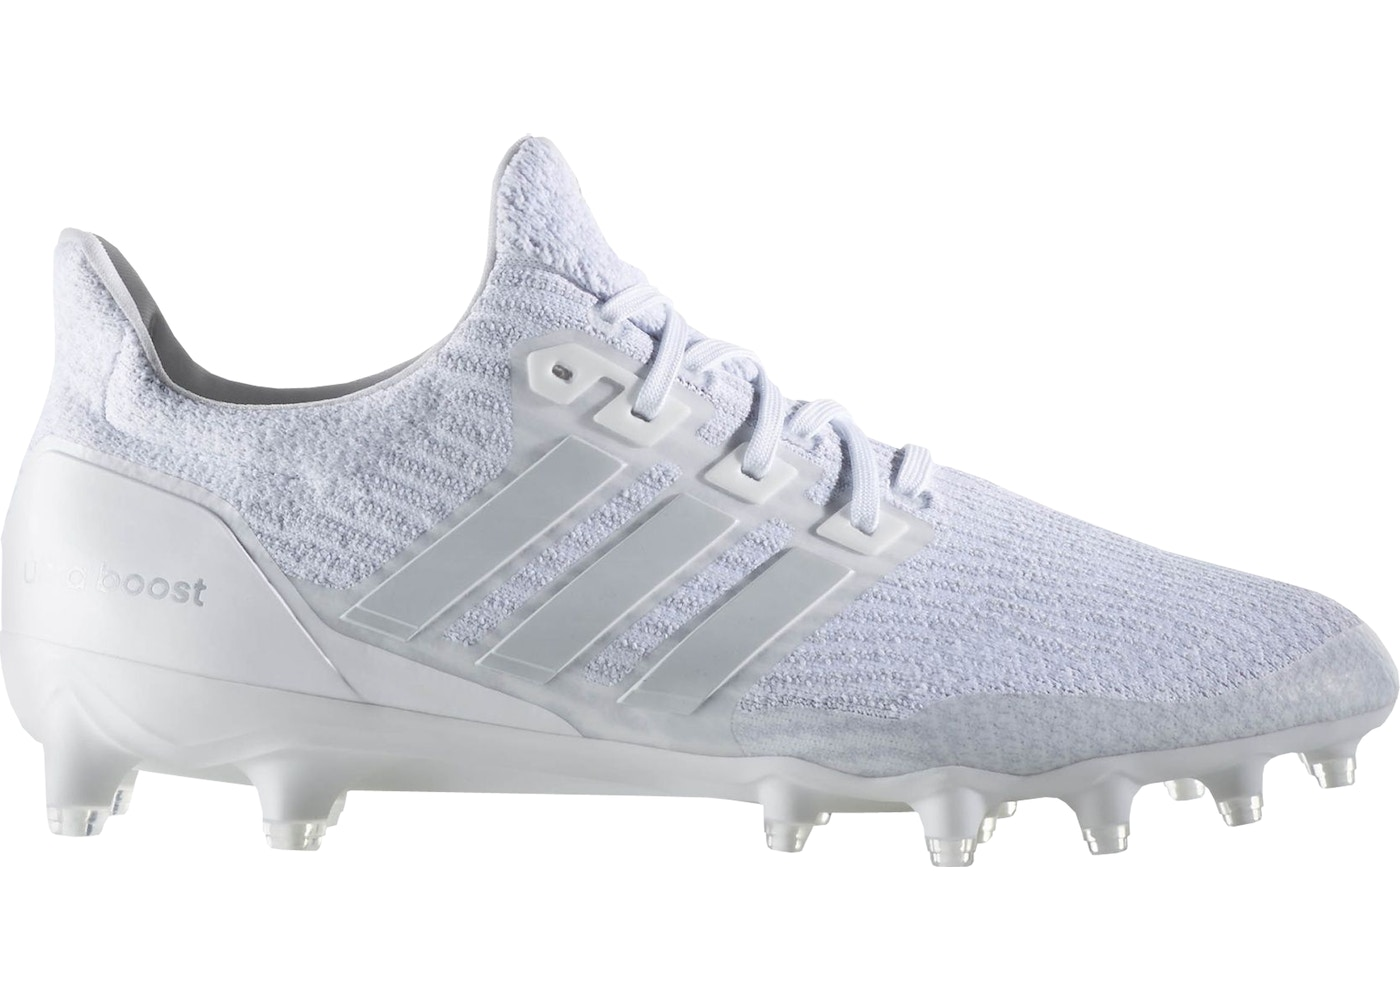 detailed look 25506 8457b ... Shoes Black 1707, adidas Ultraboost Triple White Cleat M sz 9.5 CG4814